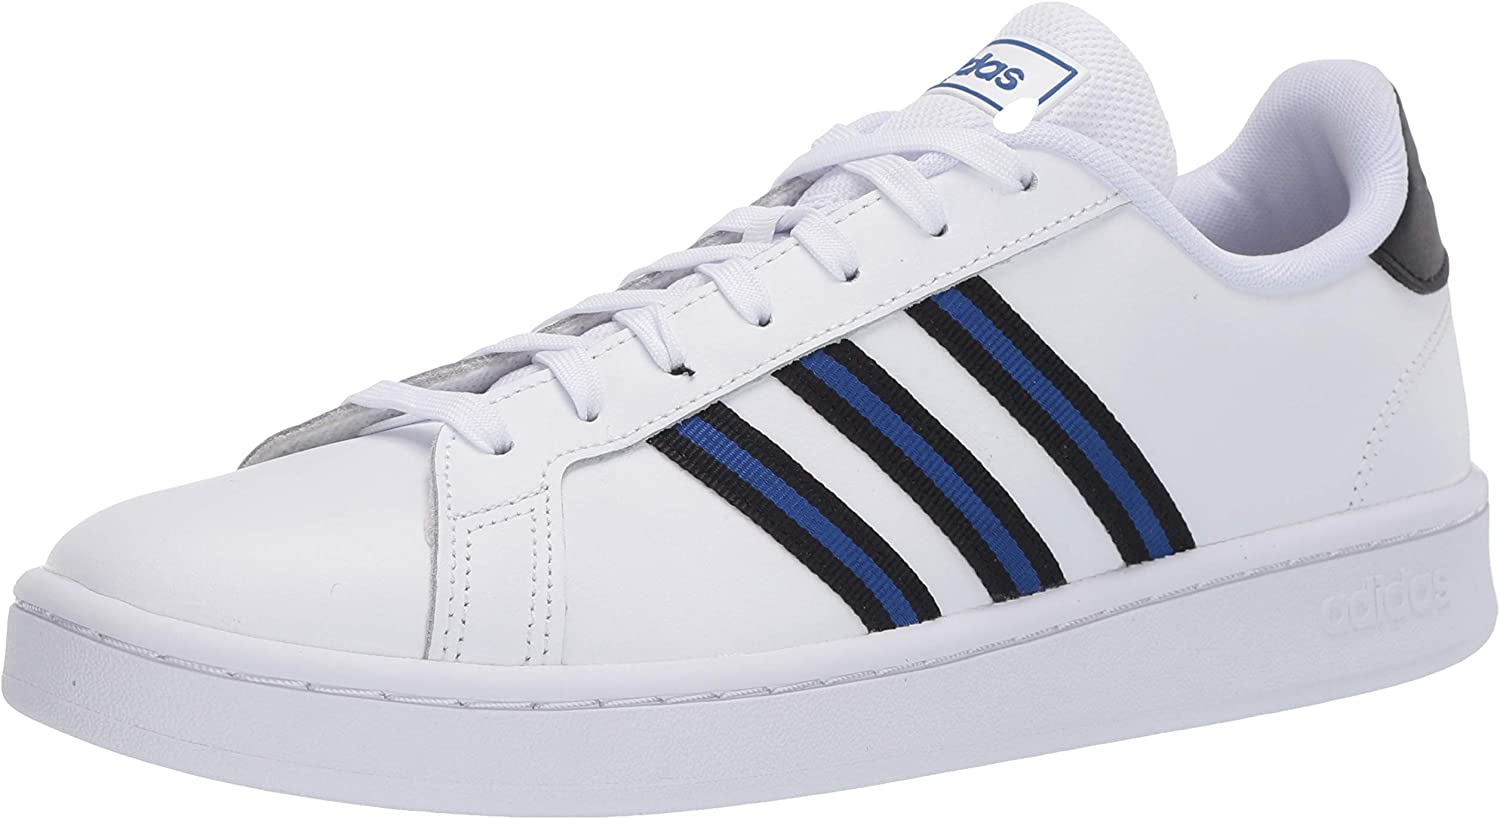 adidas Ranking Daily bargain sale TOP6 Men's Grand Court Sneaker